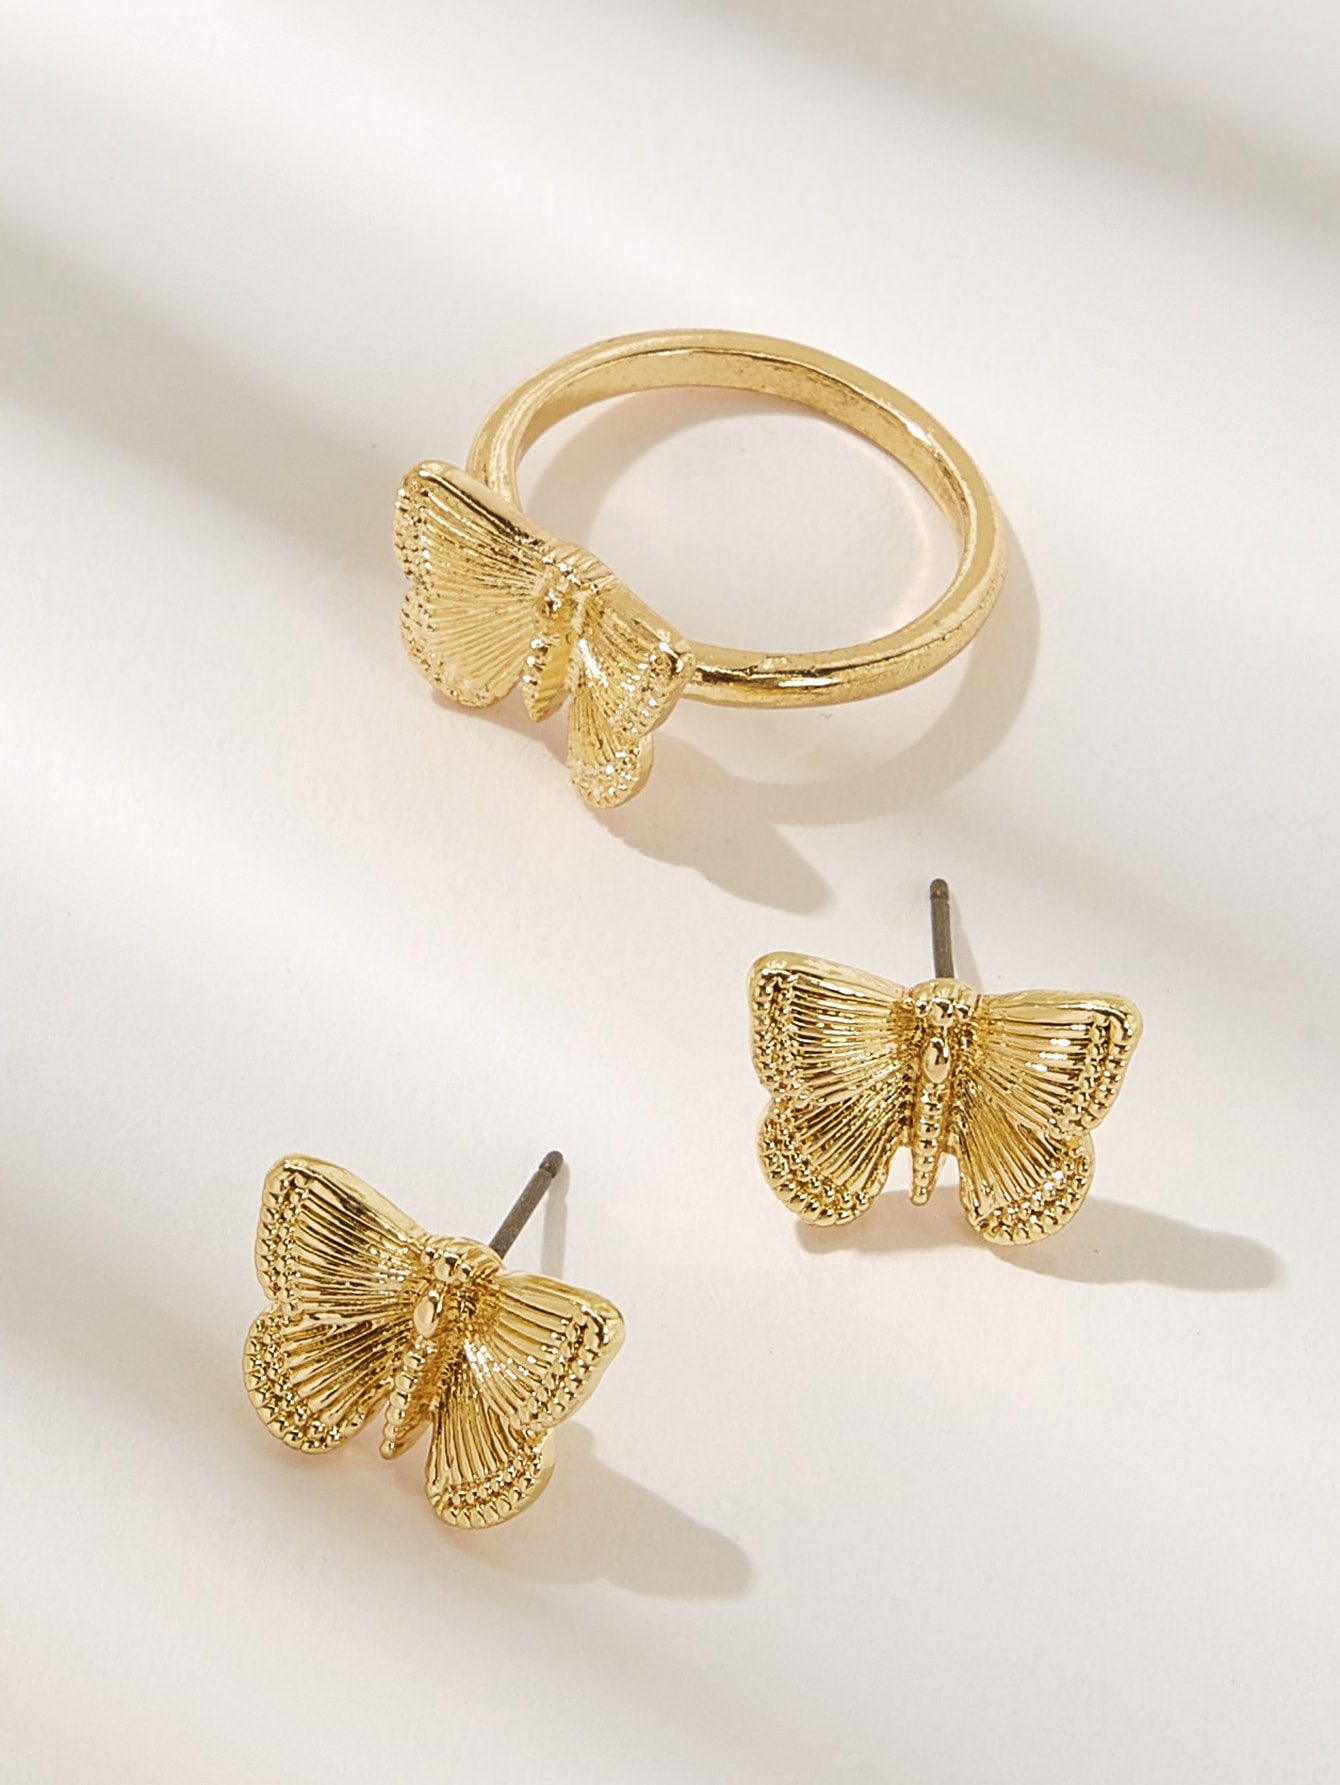 3pcs Golden Butterfly Shaped Ring & Stud Earrings